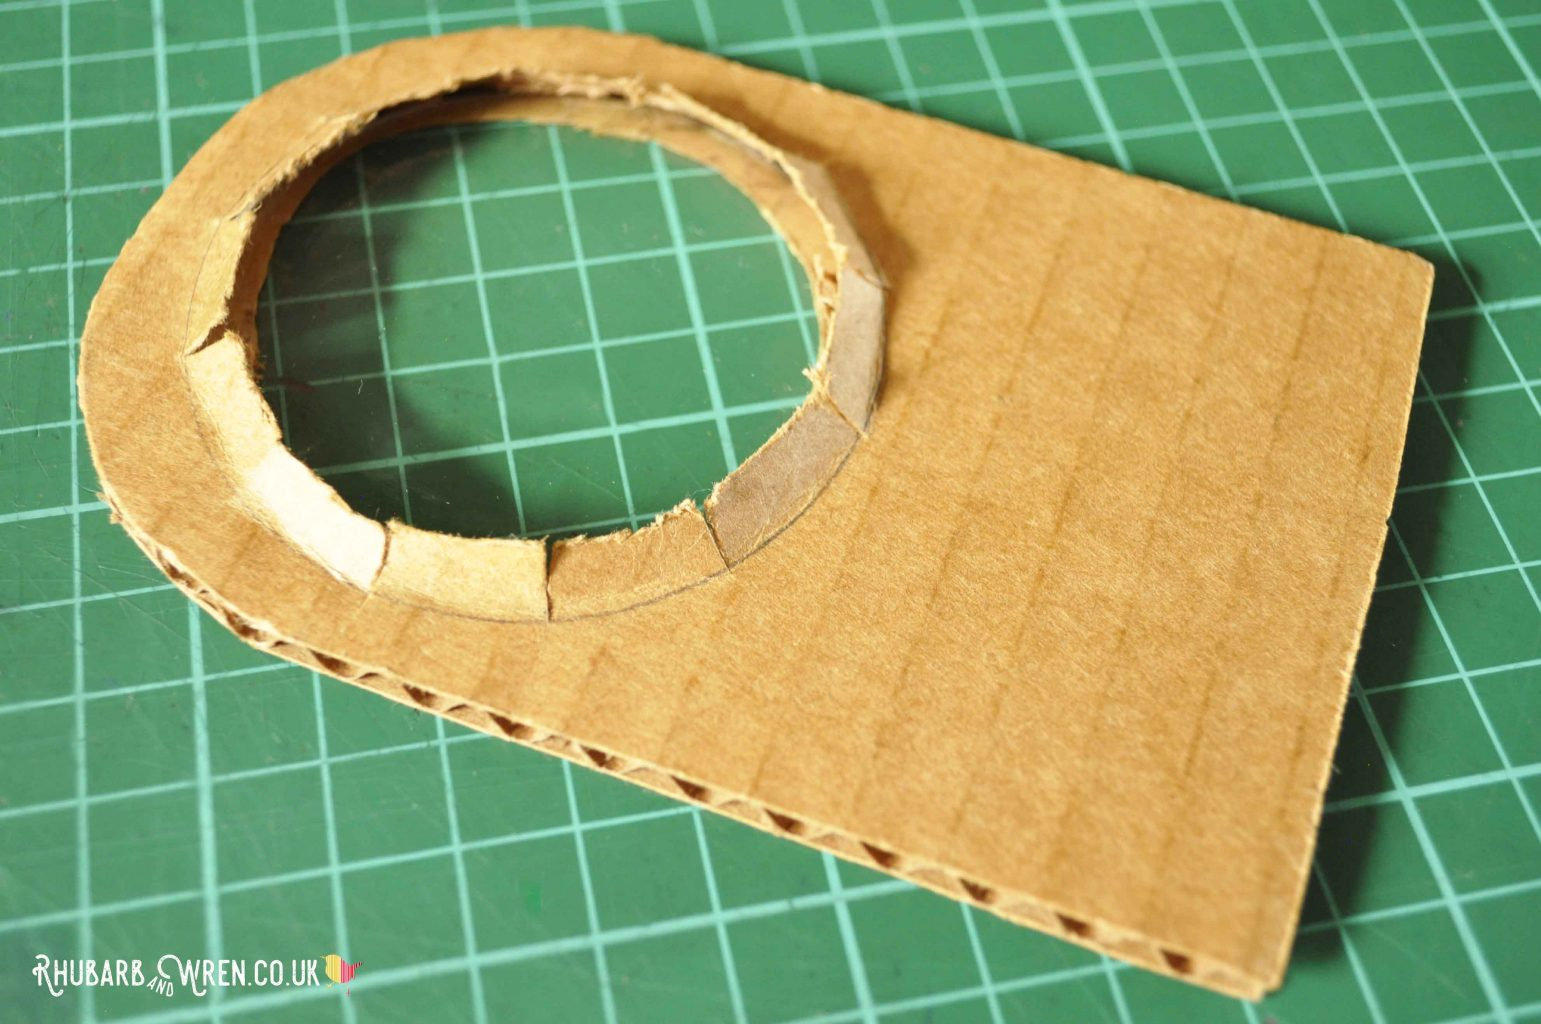 A diy real magnifying glass in progress